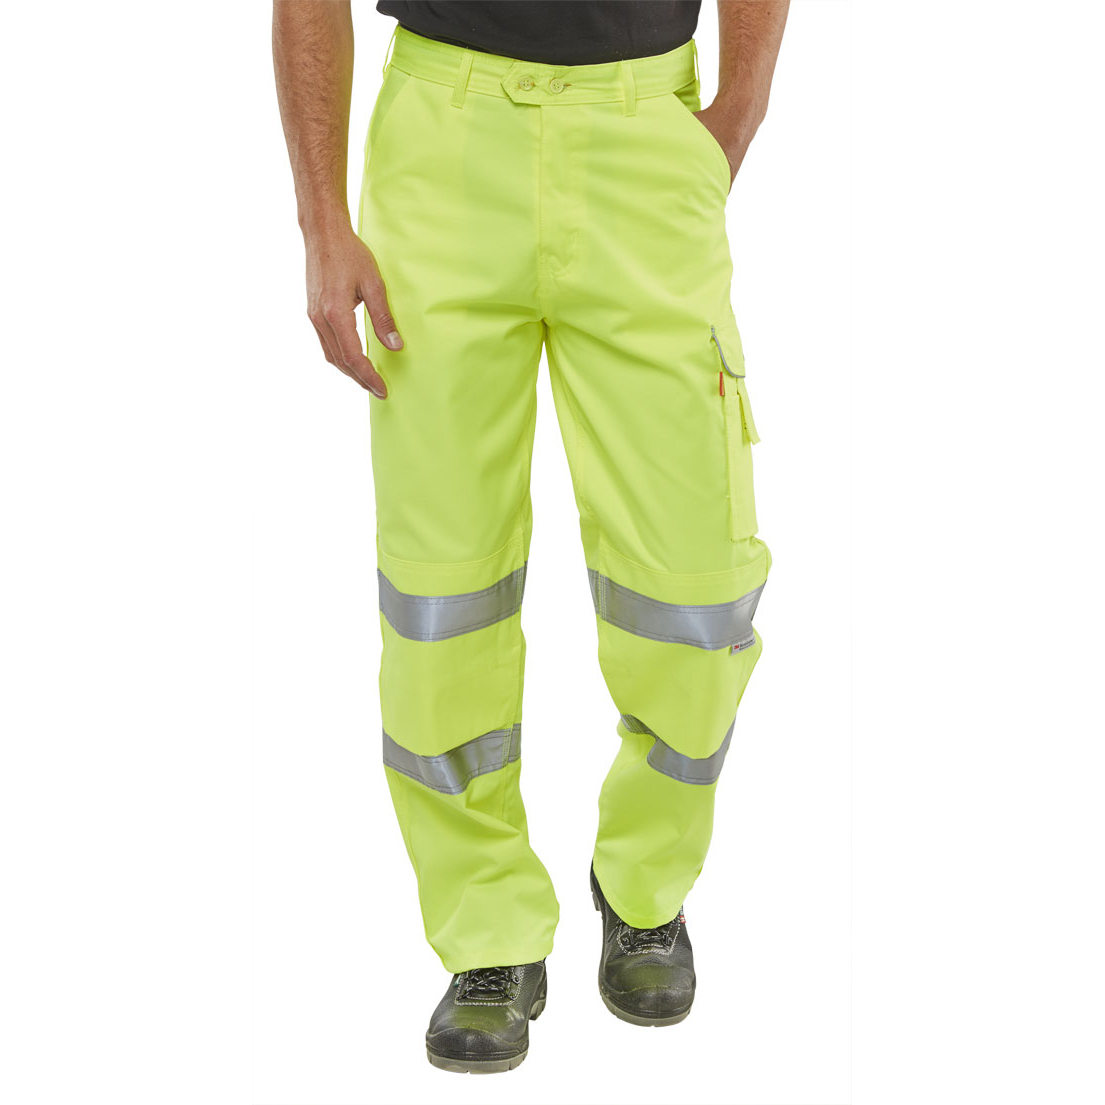 BSeen Trousers Polycotton Hi-Vis EN471 Saturn Yellow 44 Ref PCTENSY44 *Up to 3 Day Leadtime*